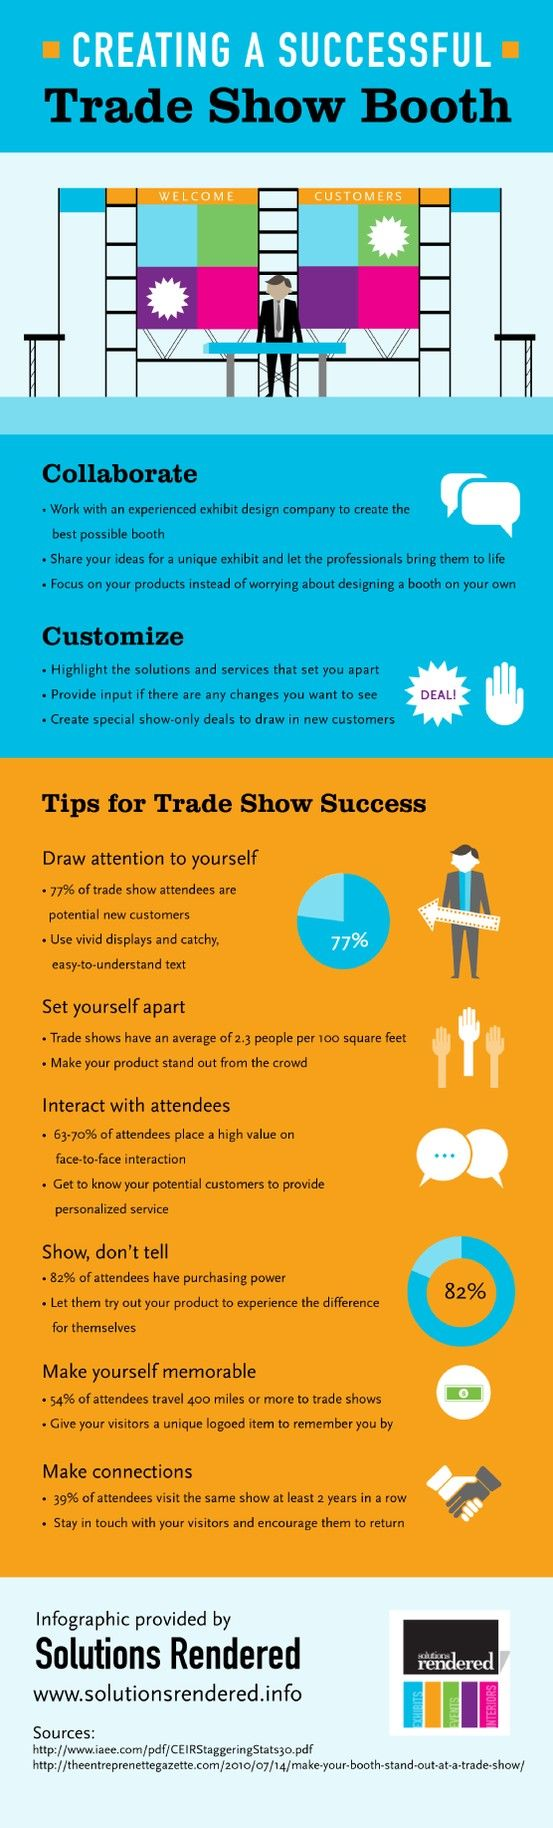 Participating in a trade show gives you the chance to promote your business to potential new customers. However, in order to have a successful trade show experience, you need to set yourself apart from the competition. This infographic shows how an exhibit design company can help you stand out.